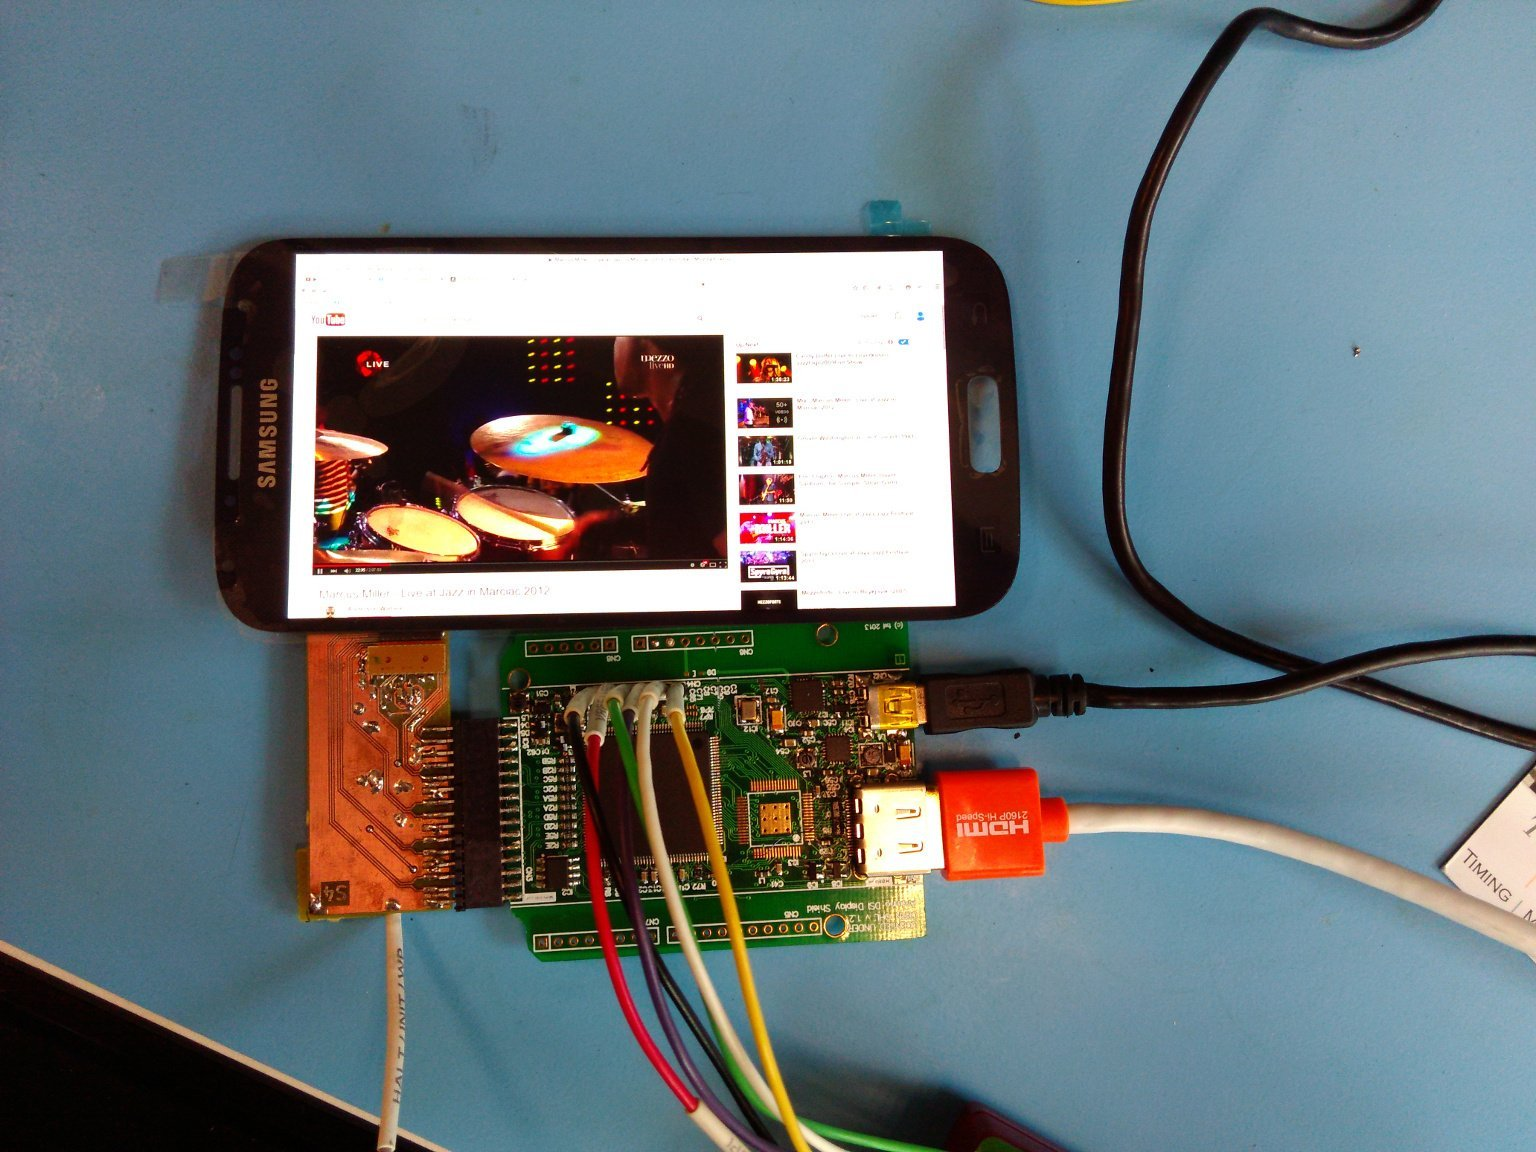 Control Smartphone Display from MIPI Display Serial Interface